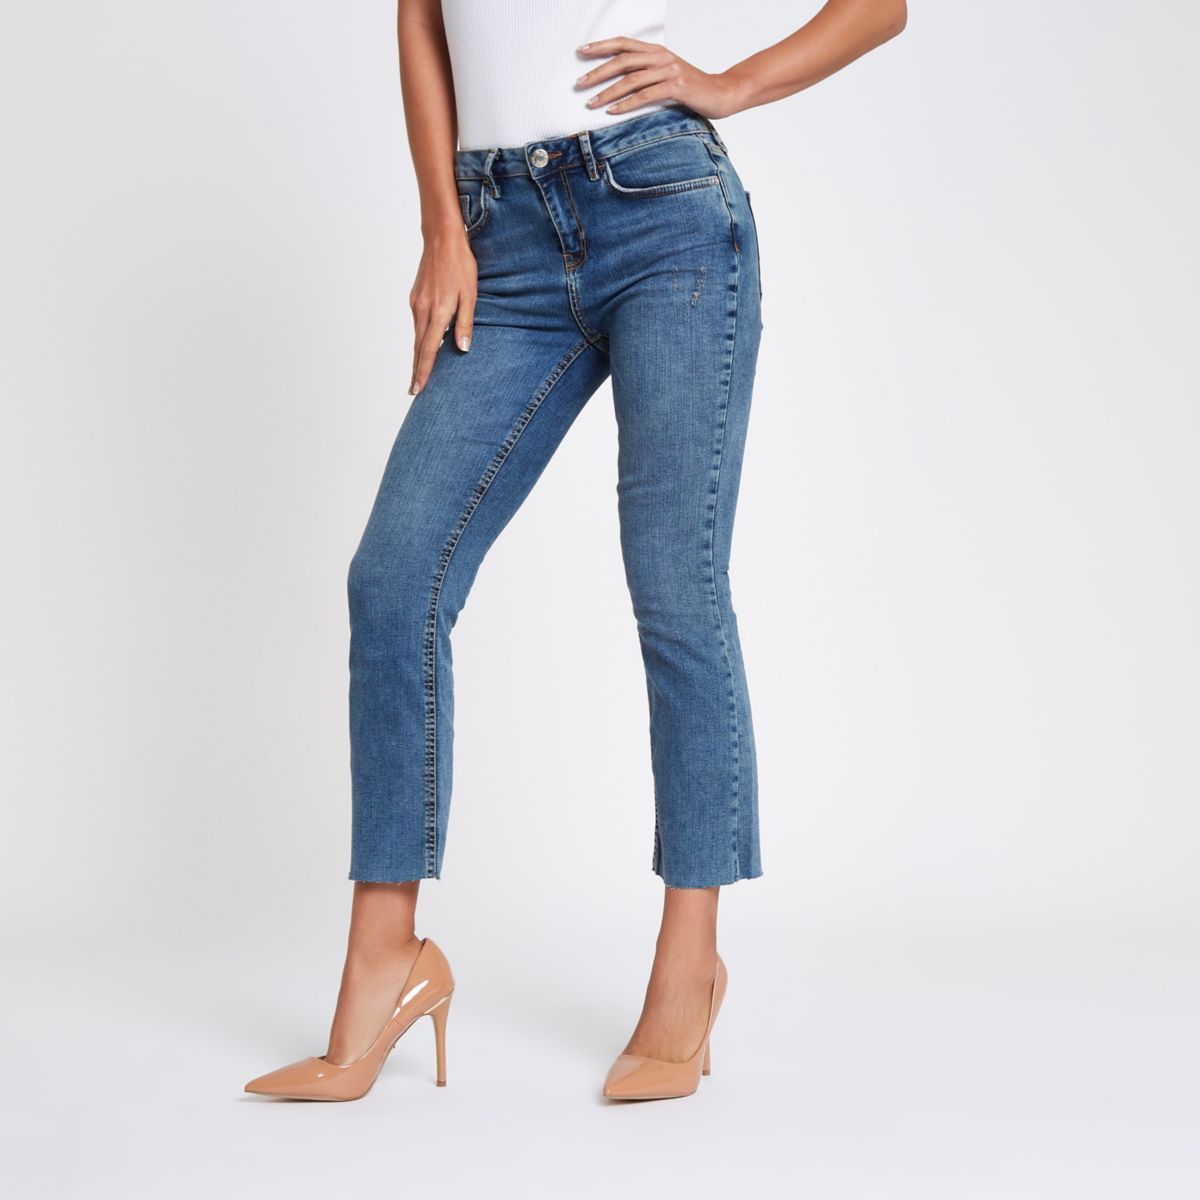 Blue denim cropped flare jeans